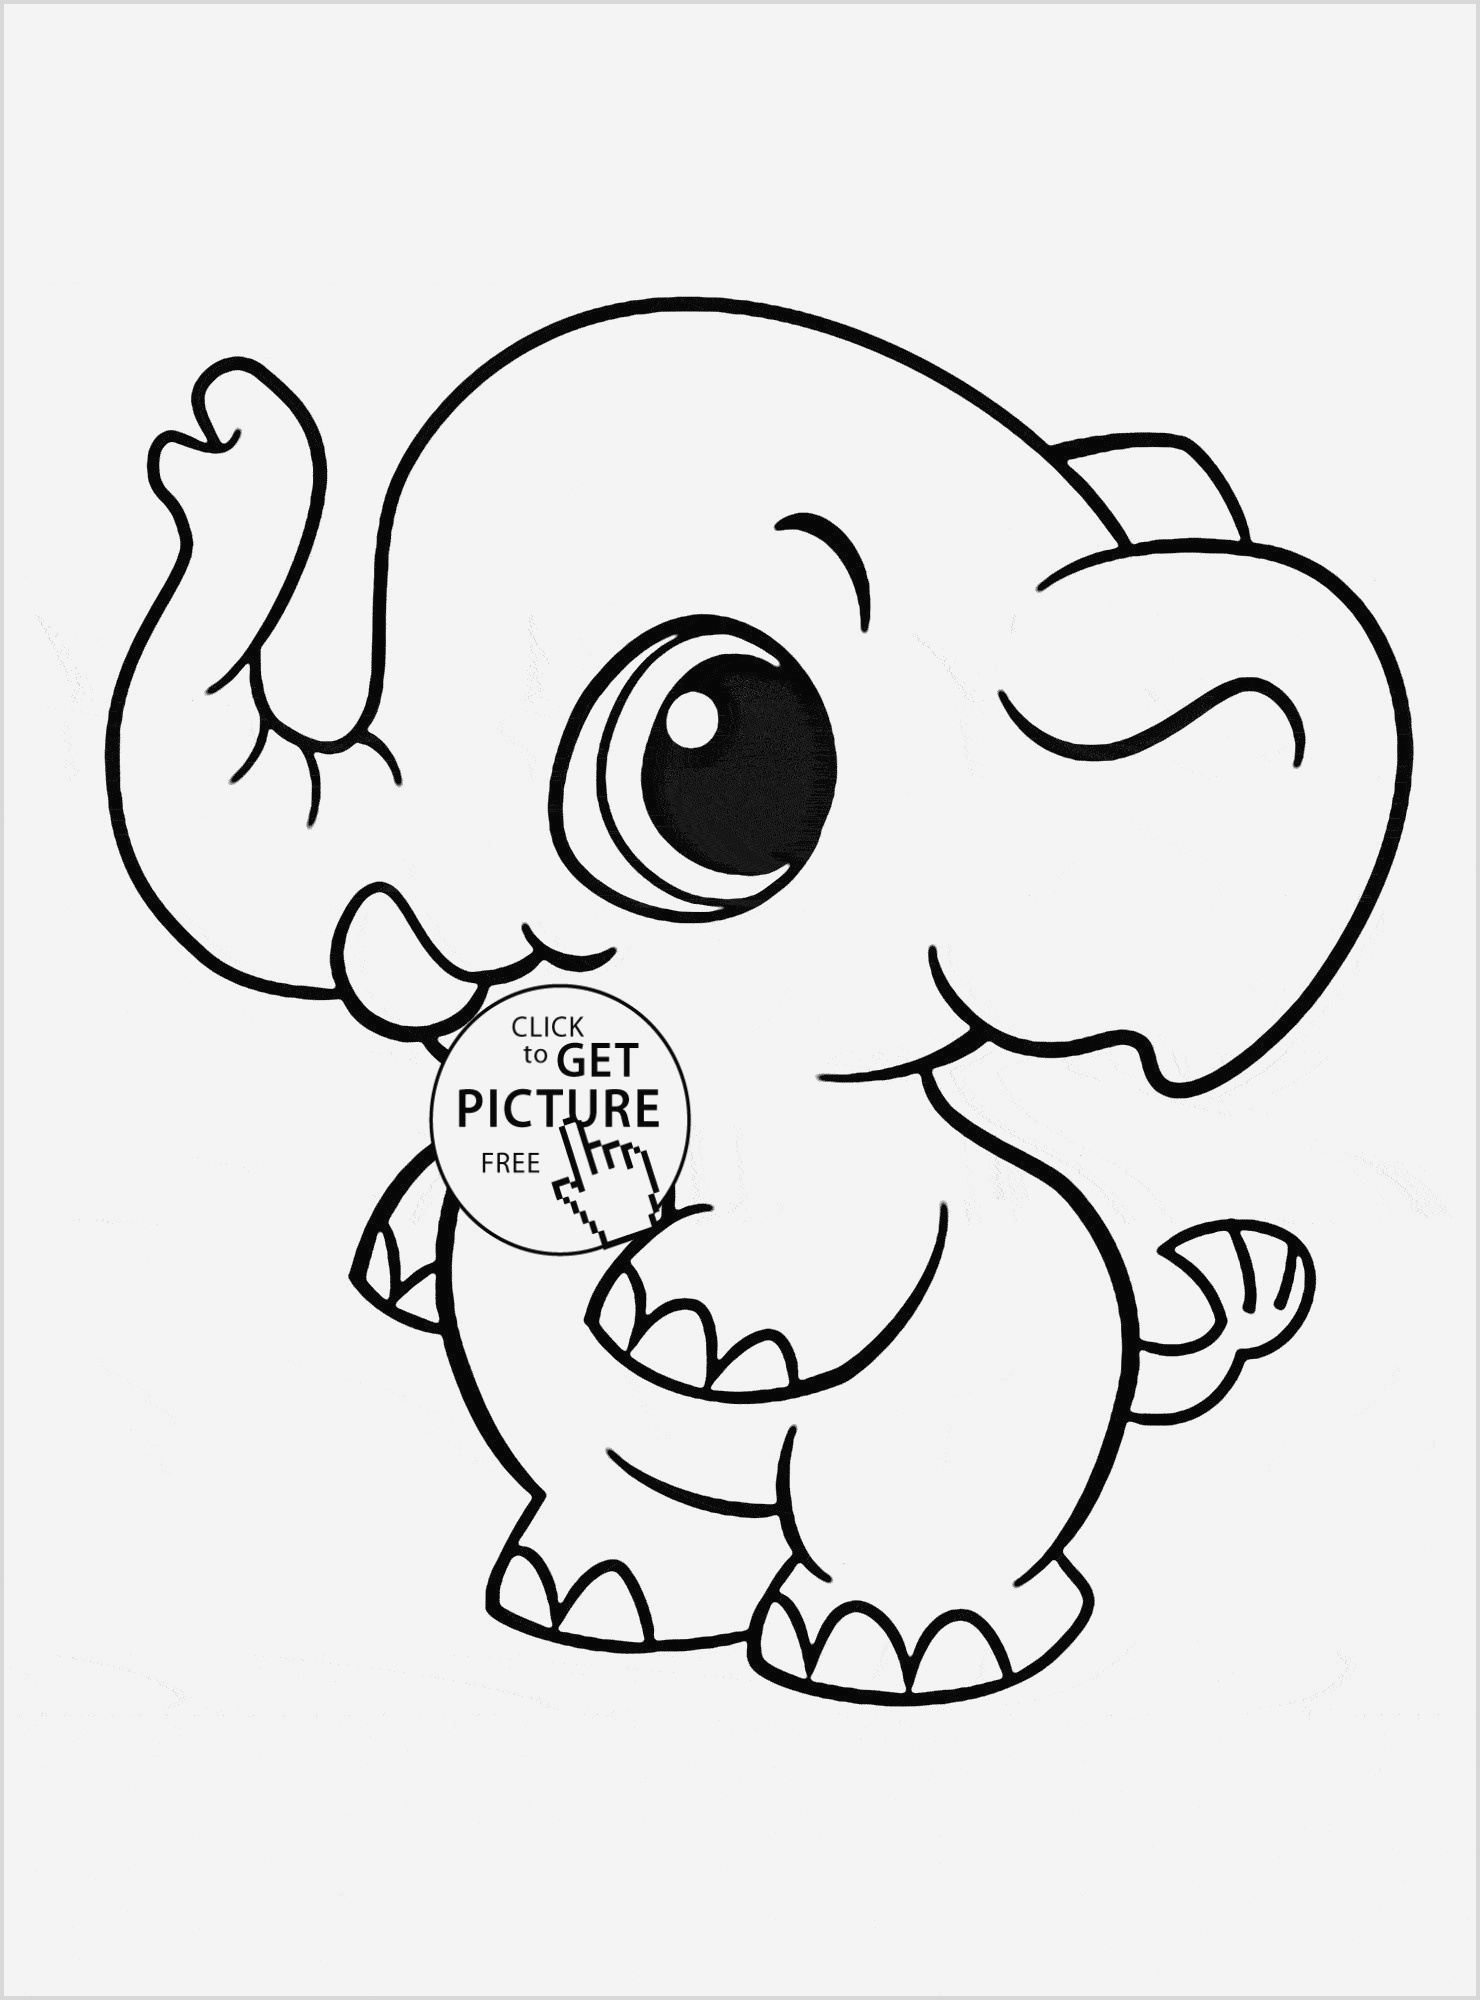 Amazing World Of Gumball Coloring Pages Free At Coloring Home